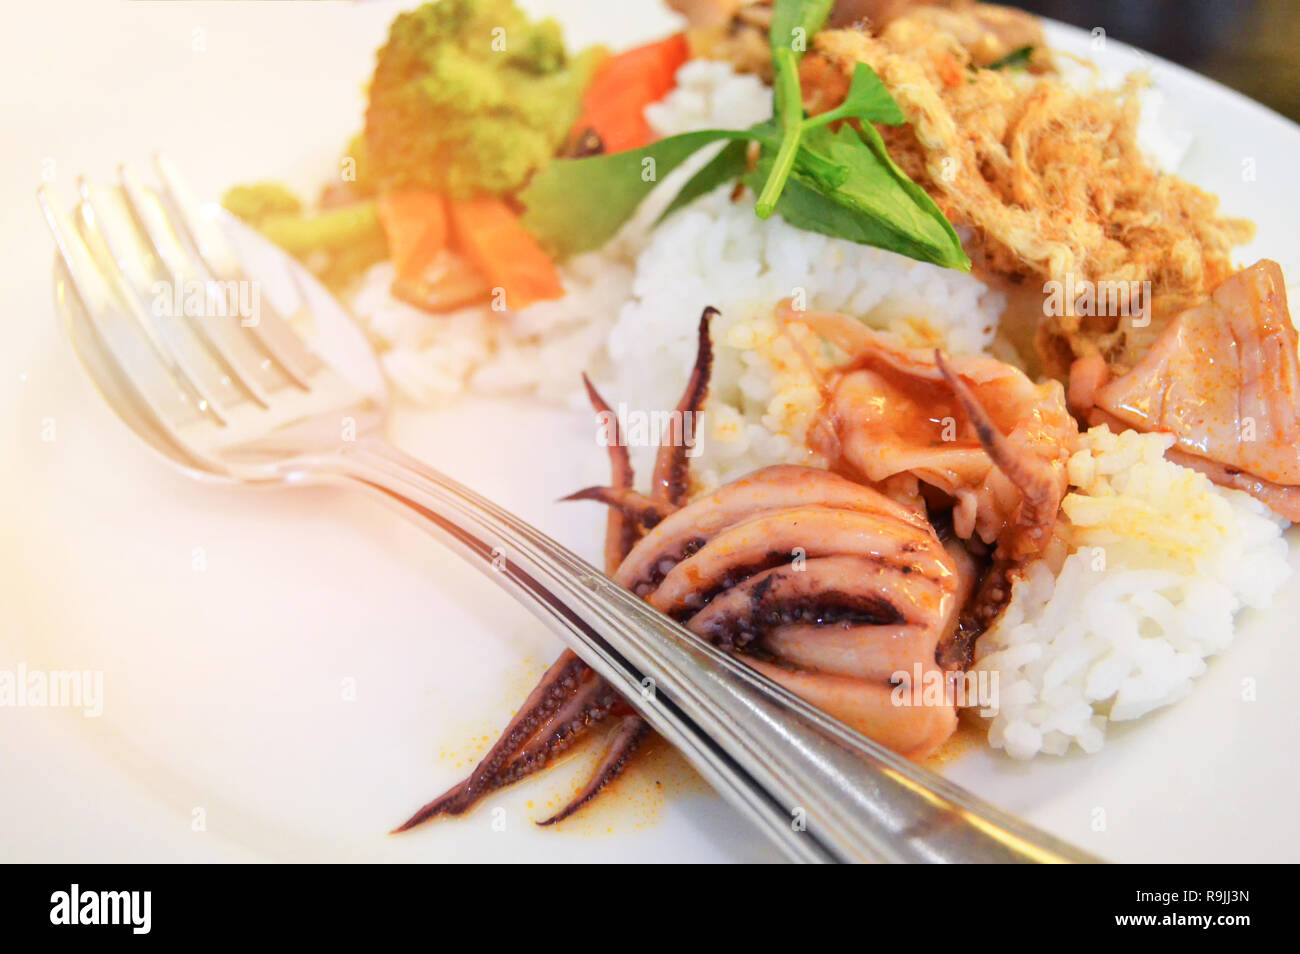 Breakfast stir fried squid with mixed vegetable carrot mushroom and broccoli on rice white plate - Stock Image